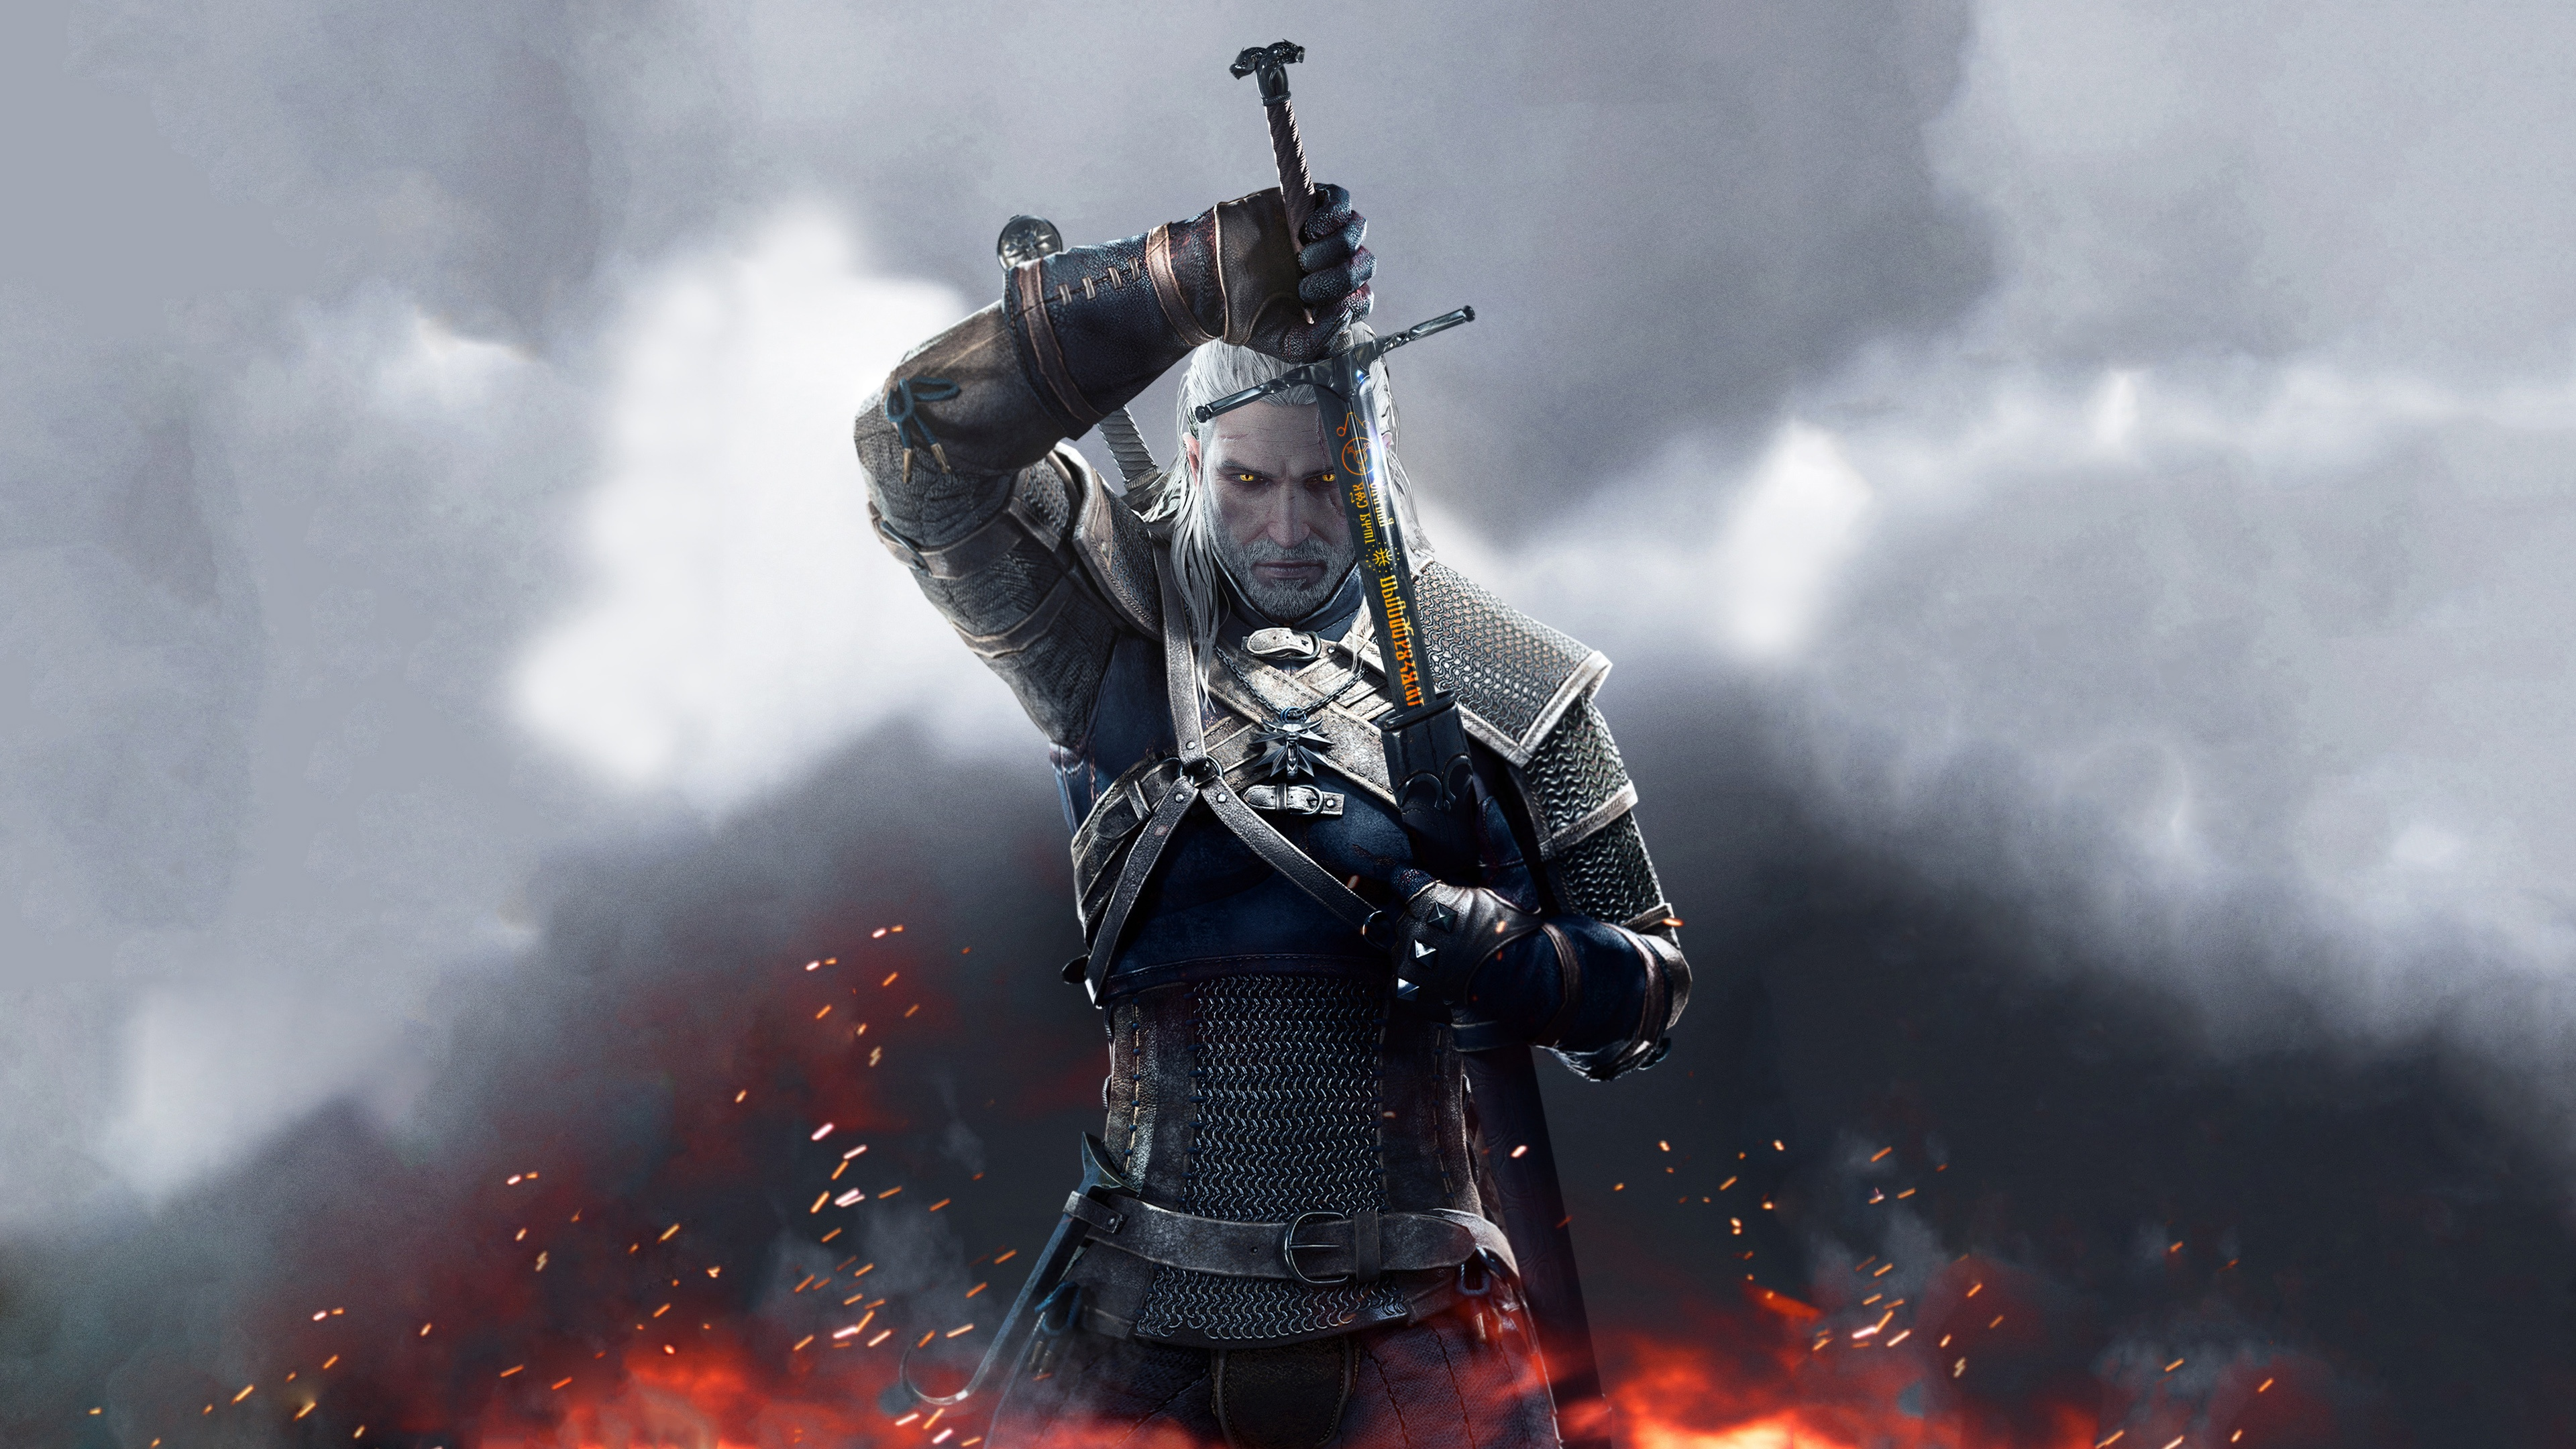 the witcher 3 ciri wallpaper hd